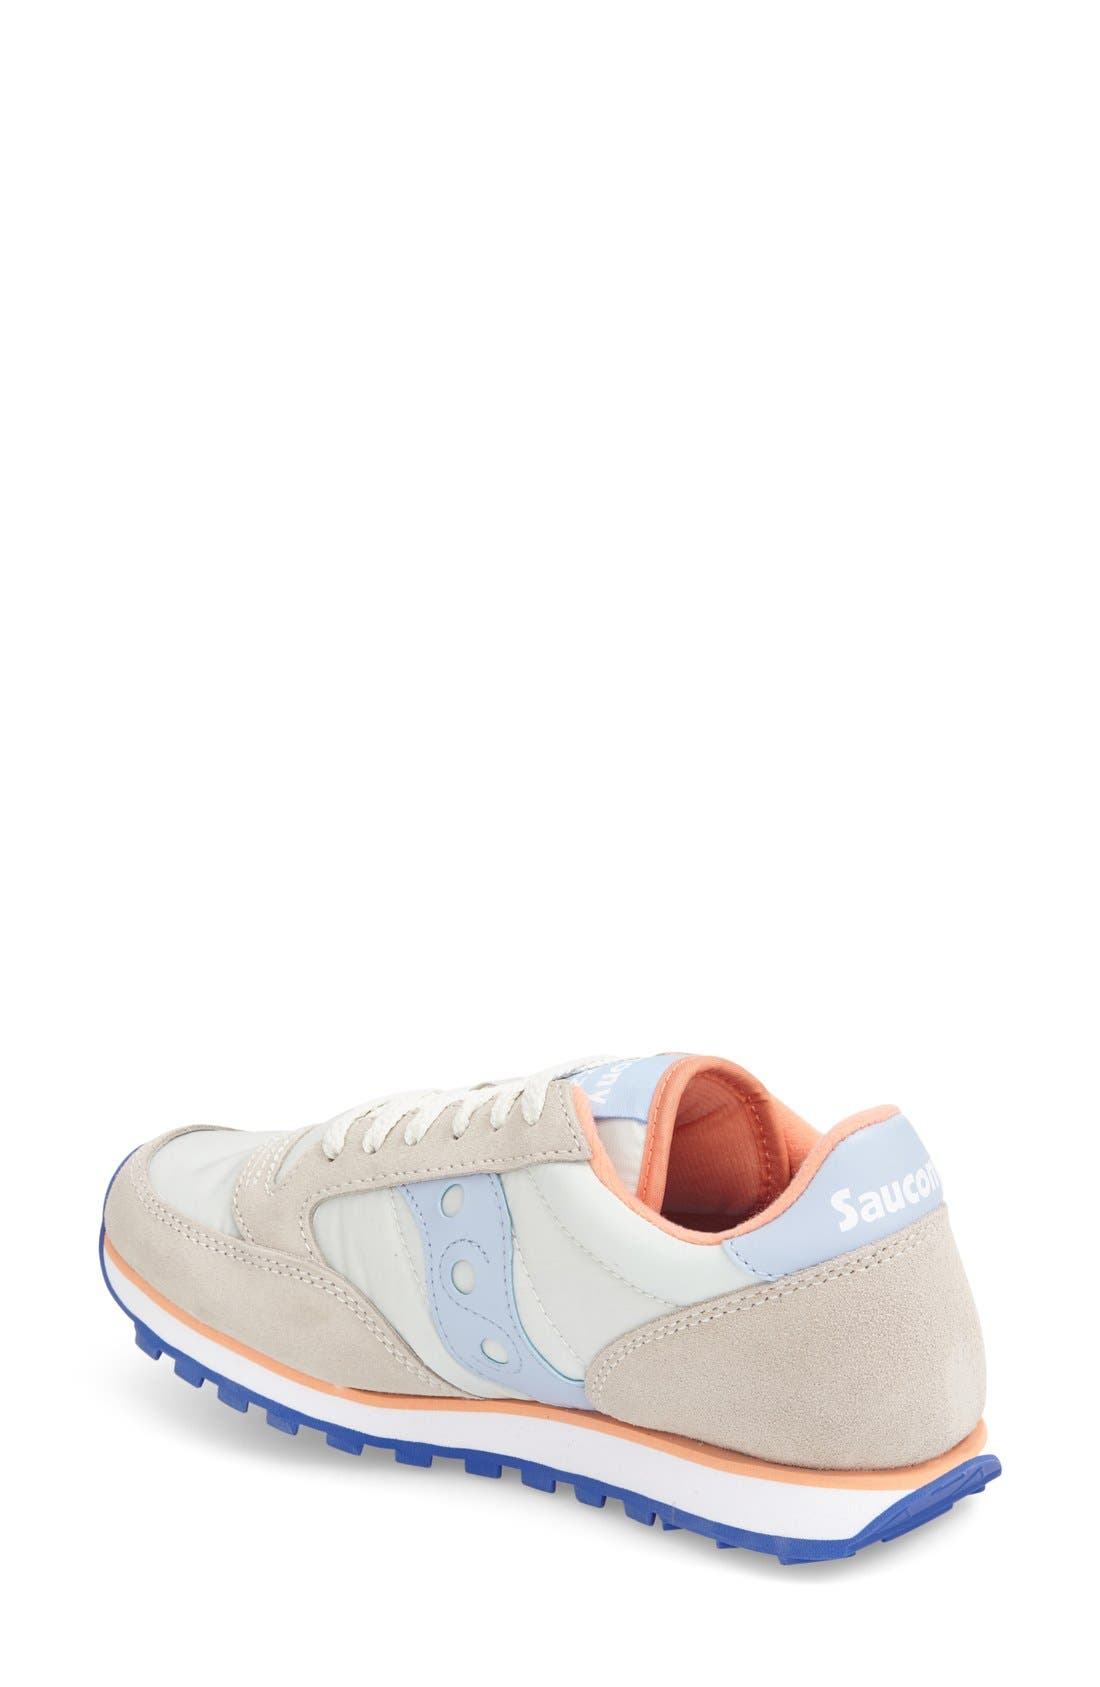 Alternate Image 2  - Saucony 'Jazz - Low Pro' Sneaker (Women)